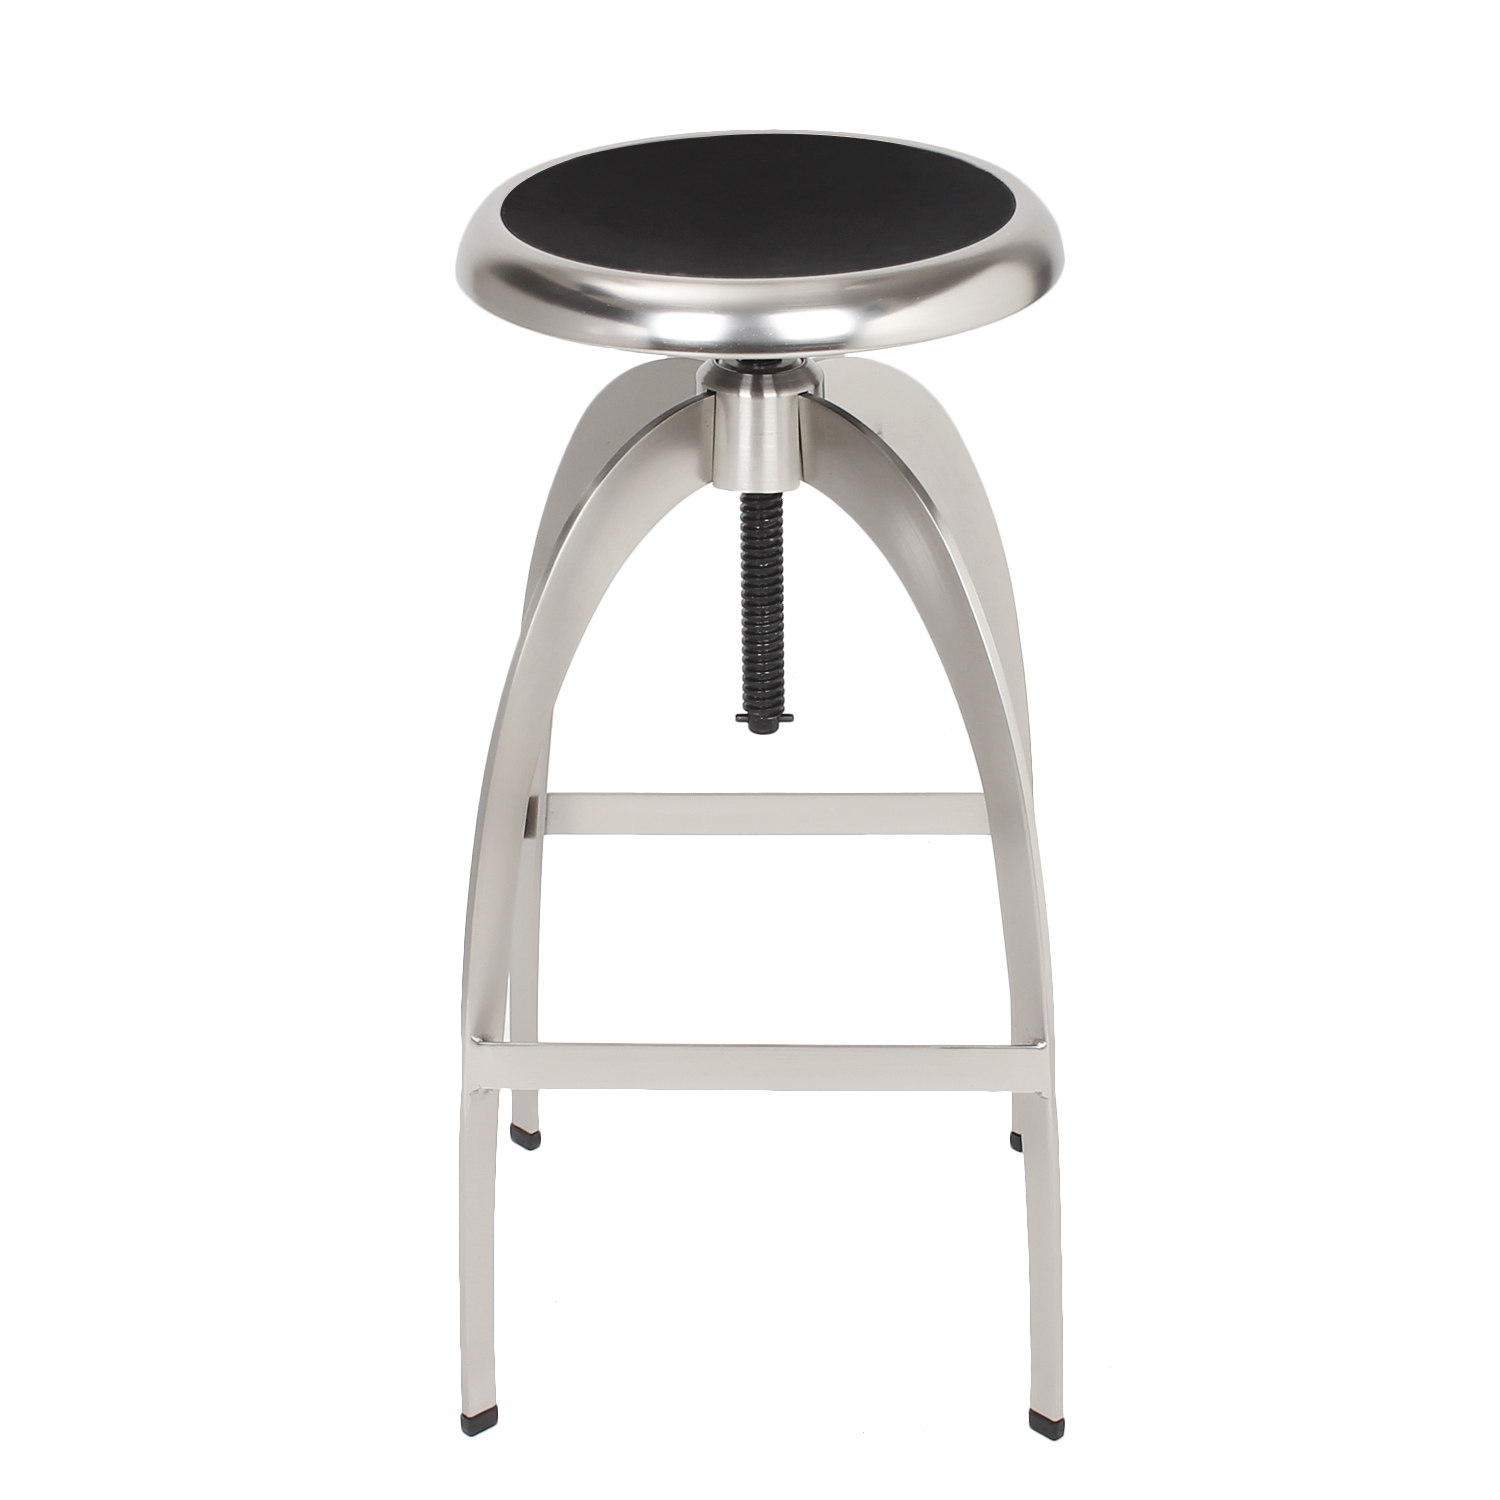 Decenthome Decenthome Brushed Stainless Steel Adjustable Logan Metal Stool Single